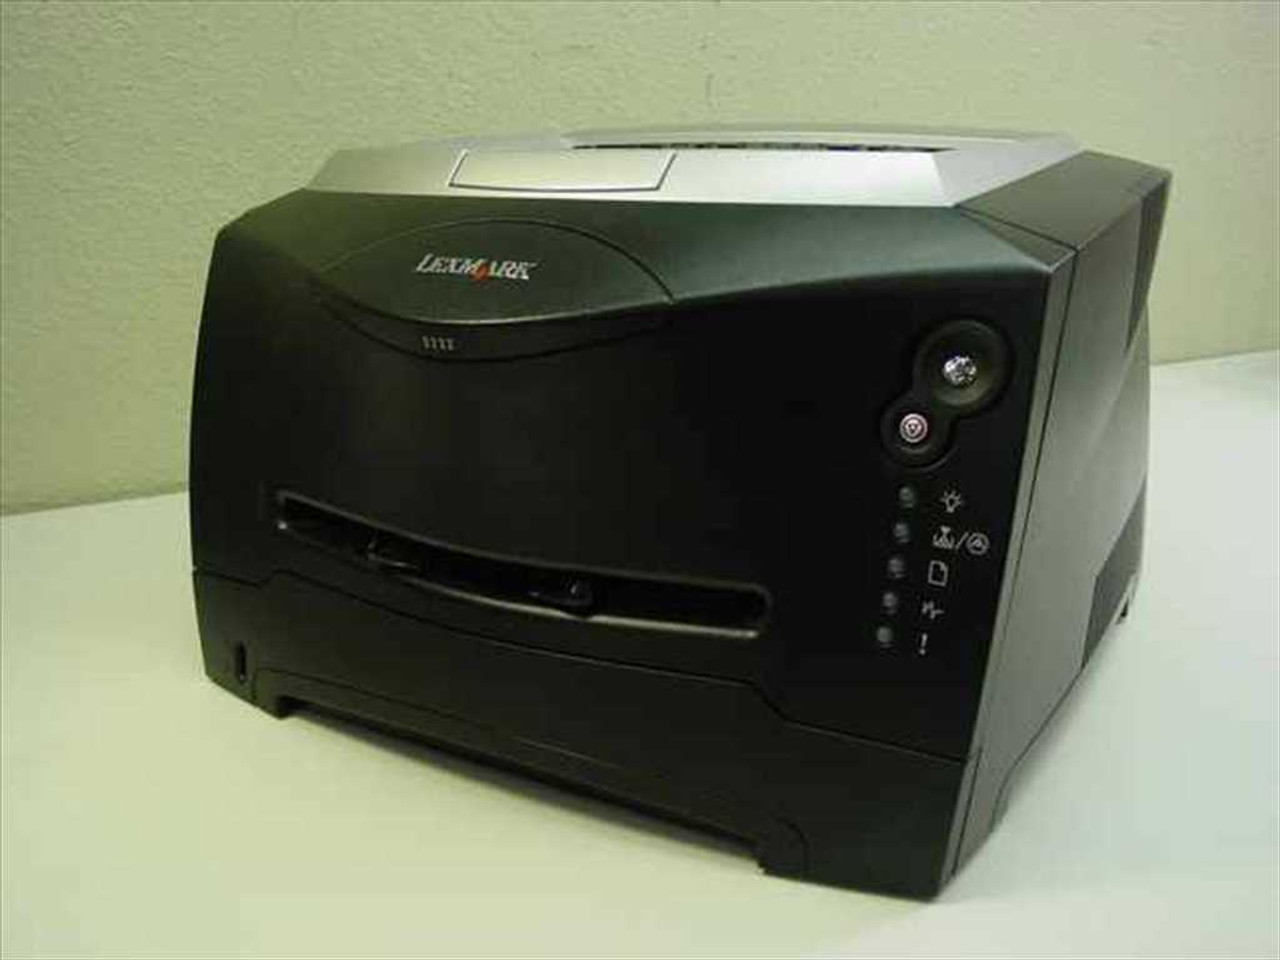 LEXMARK INTERNATIONAL E232 TREIBER WINDOWS 10